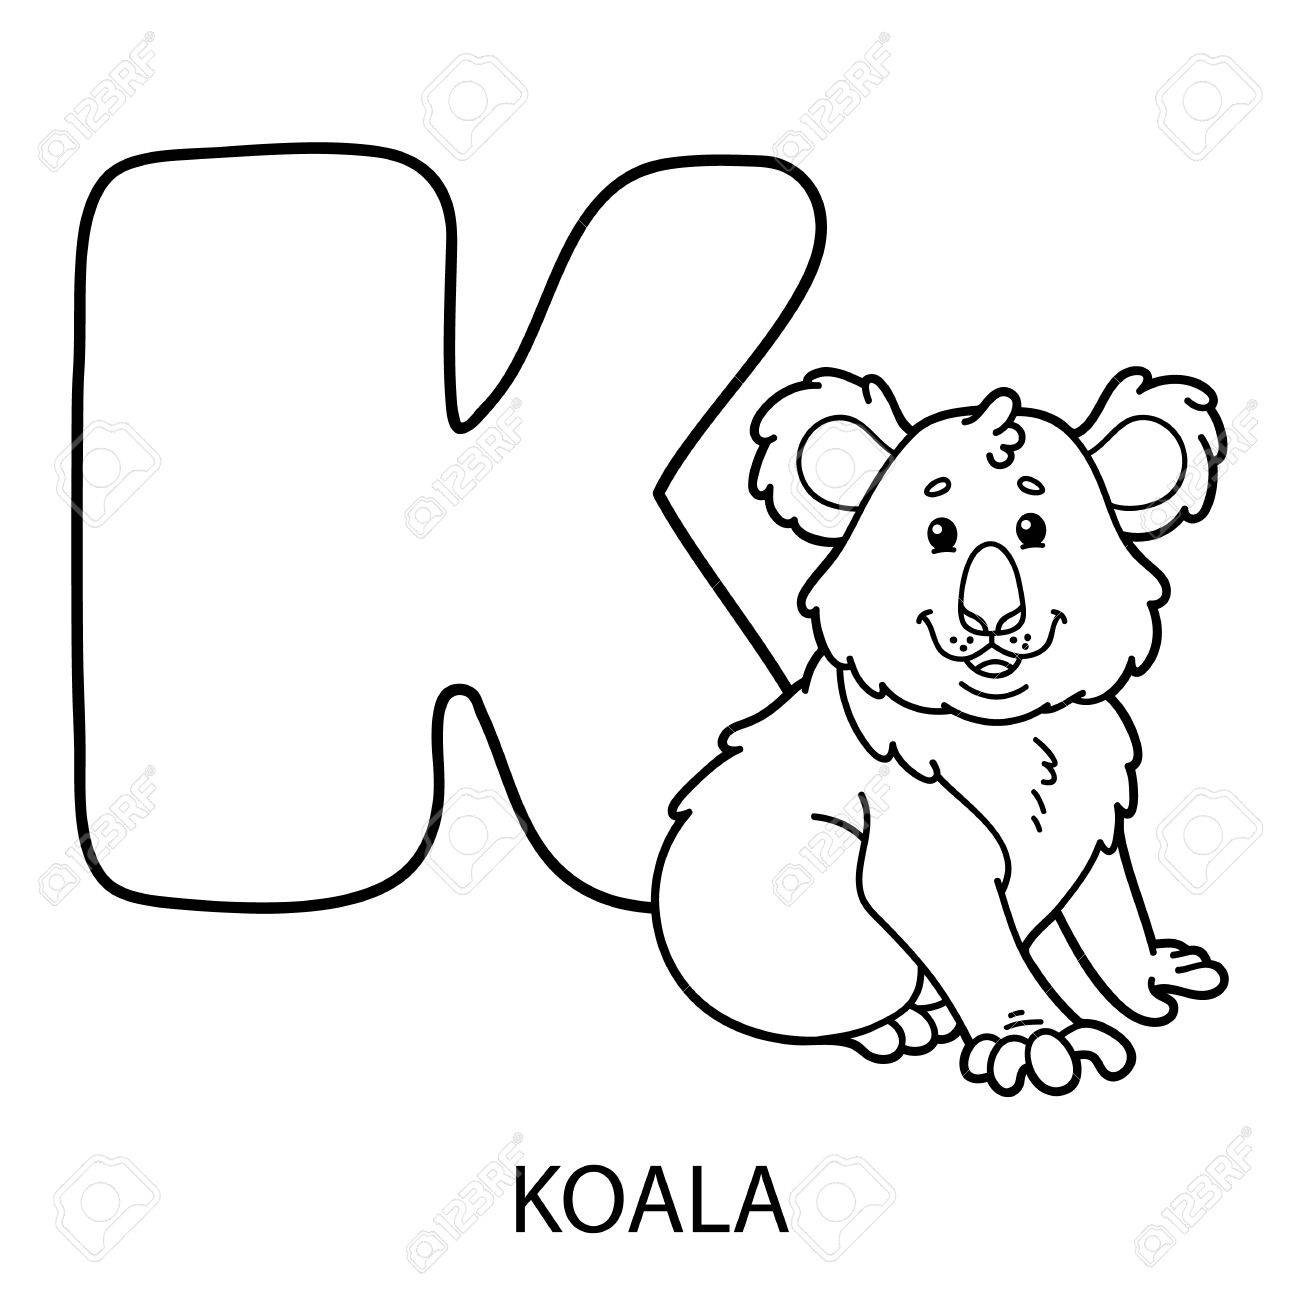 Animal Alphabet Coloring Page. Vector Illustration Of Educational Alphabet  Coloring Page With Cartoon Animal For